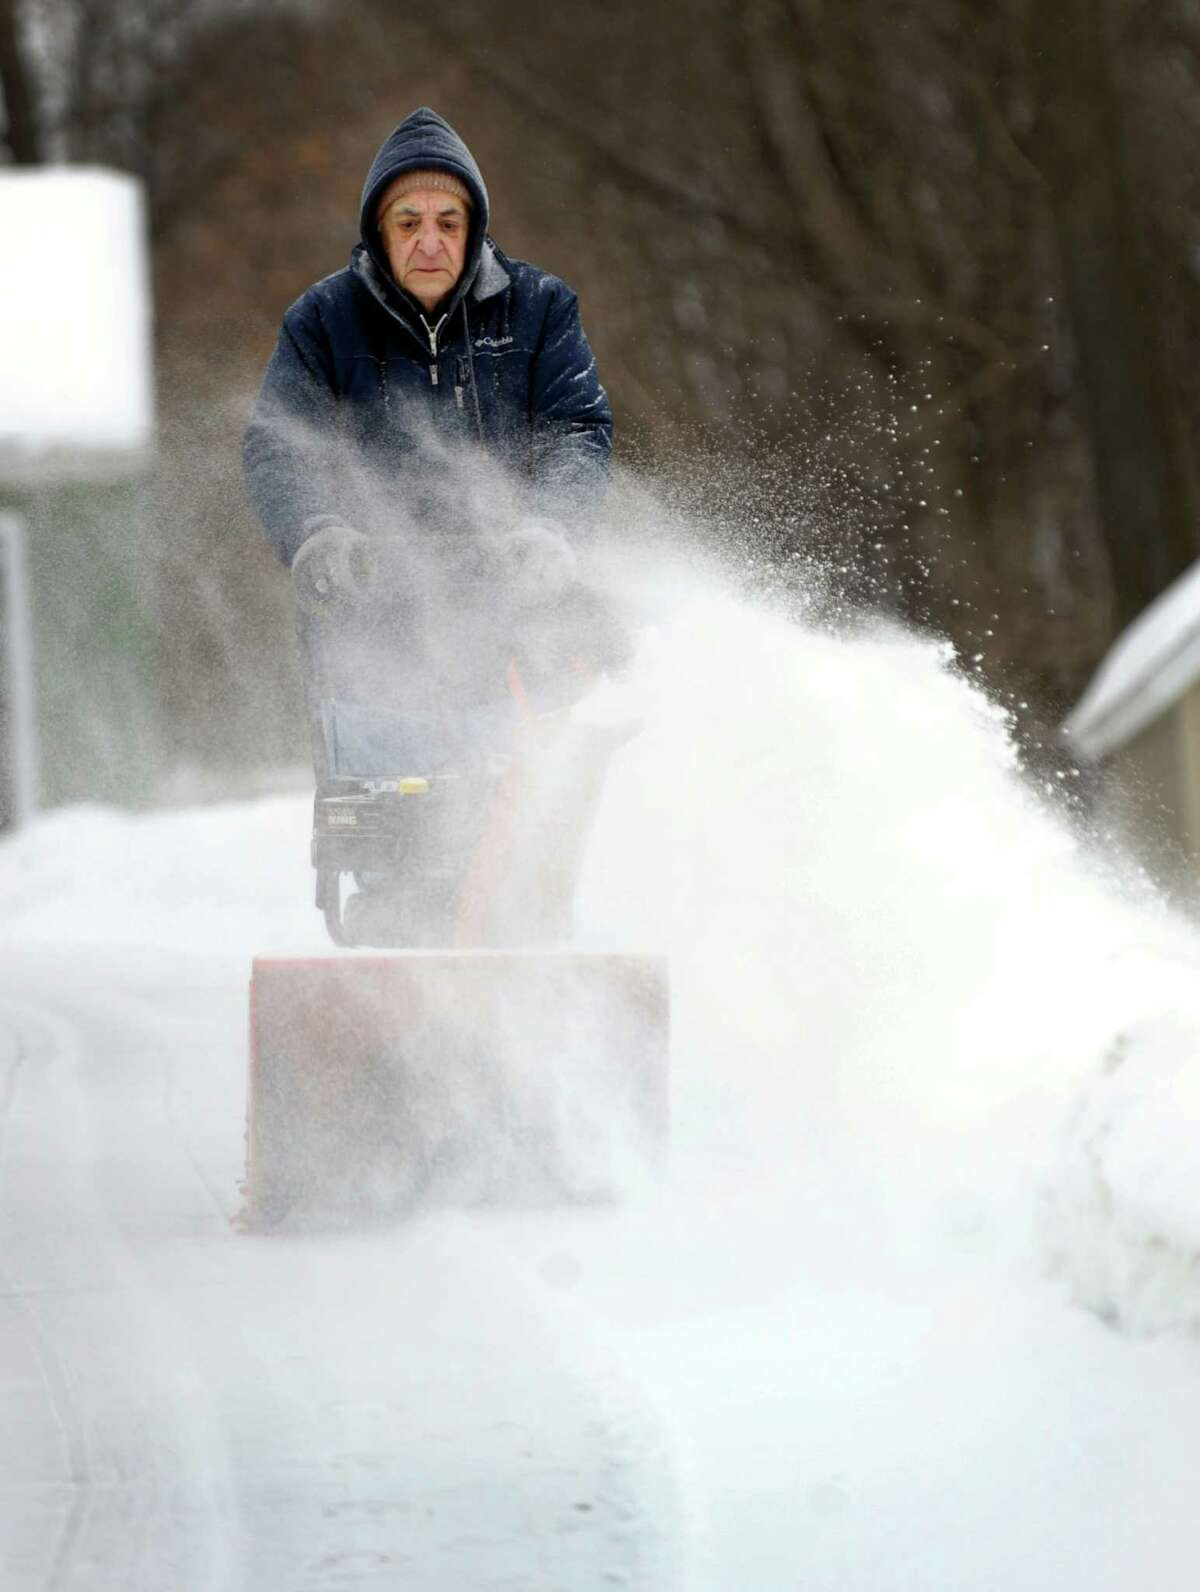 Joseph Rotella, 82, snowblows his driveway on Wooster Street in Danbury, Conn., Monday, February 9, 2015.